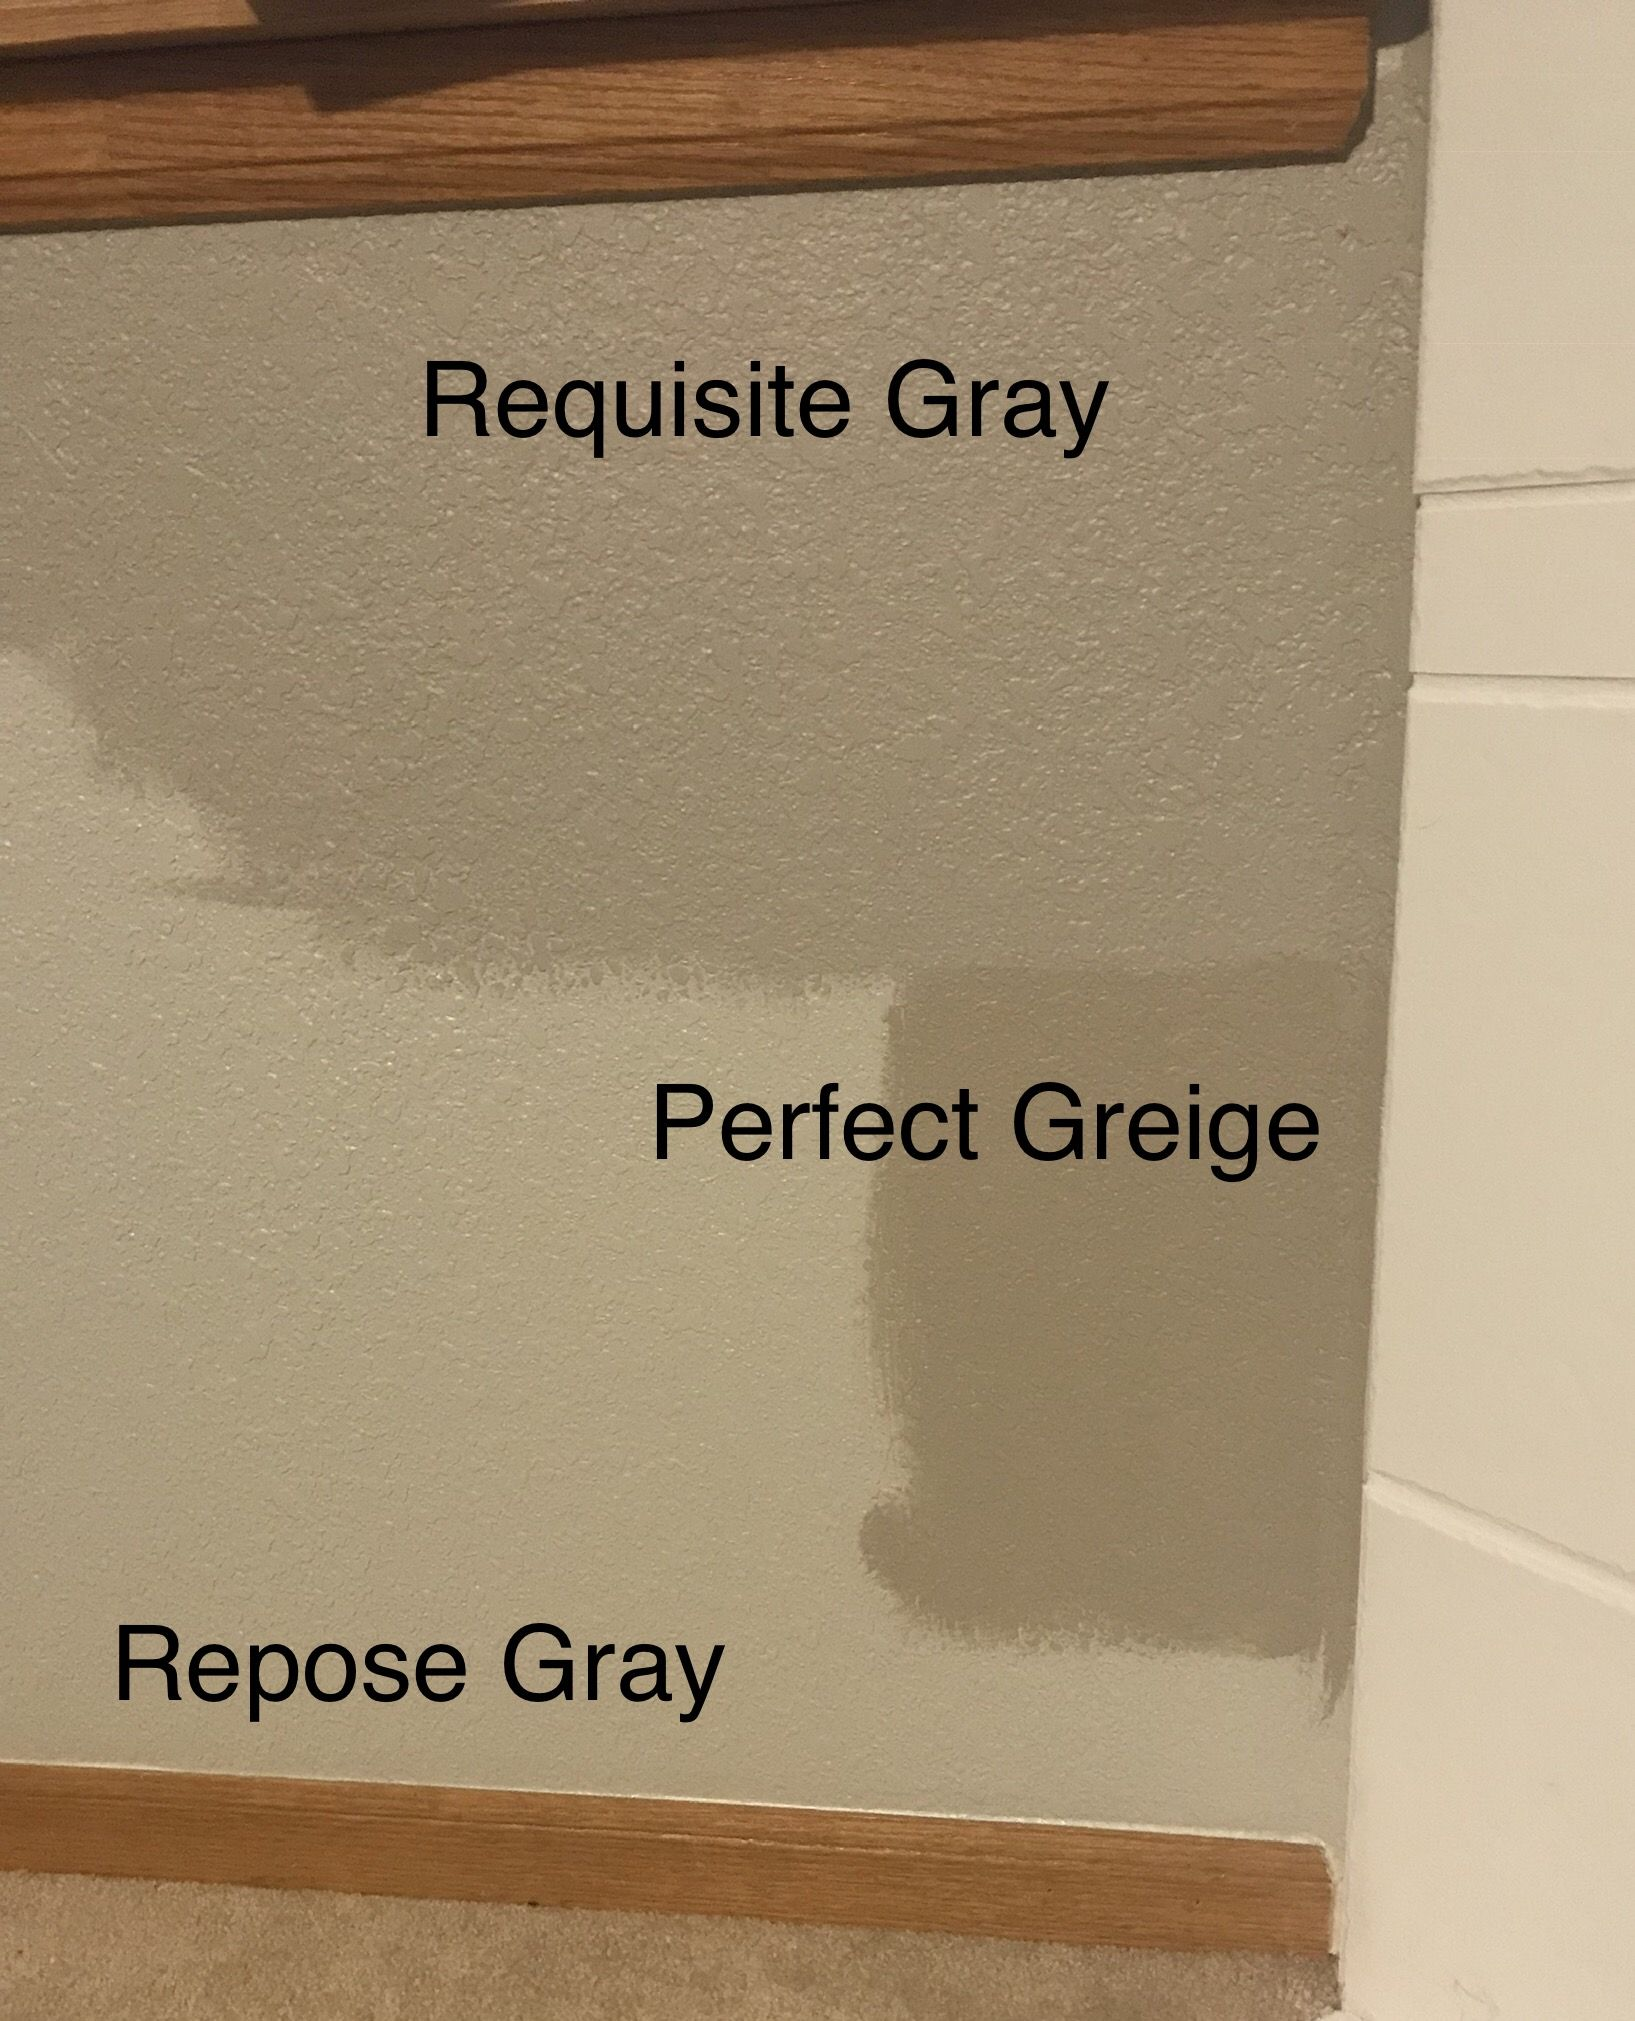 Best Sherwin Williams Requisite Gray Perfect Griege Repose 640 x 480